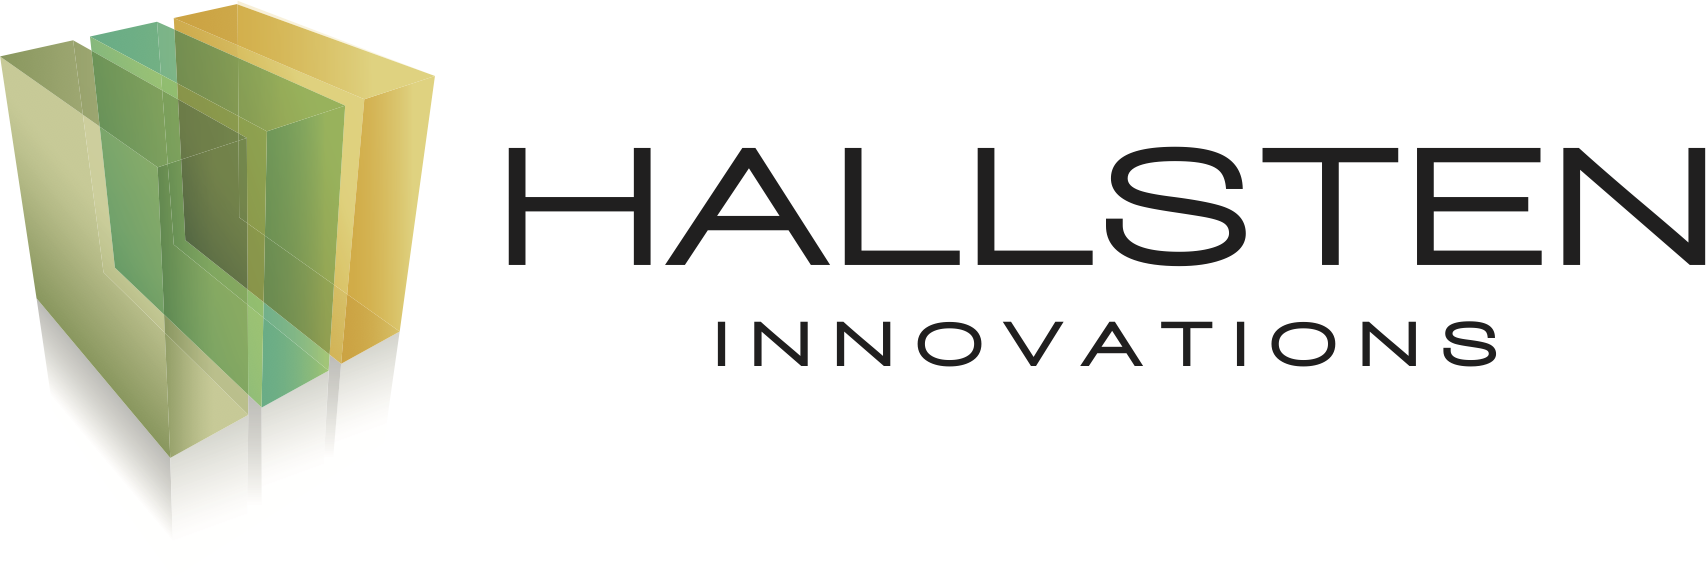 Hallsten Innovations Ltd.